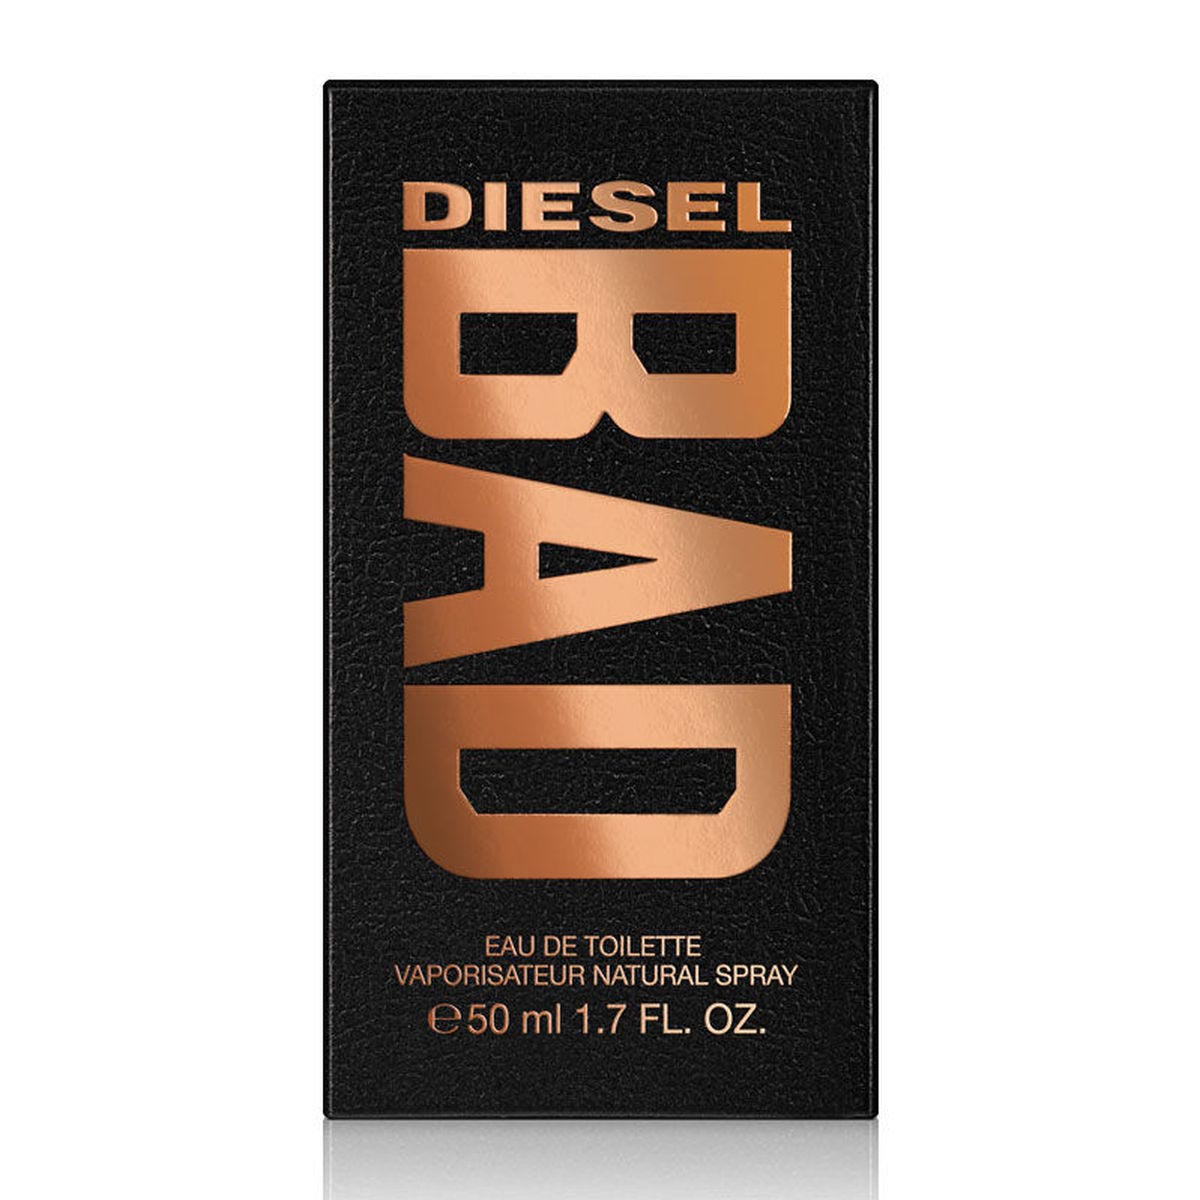 Diesel bad eau de toilette 50ml vaporizador